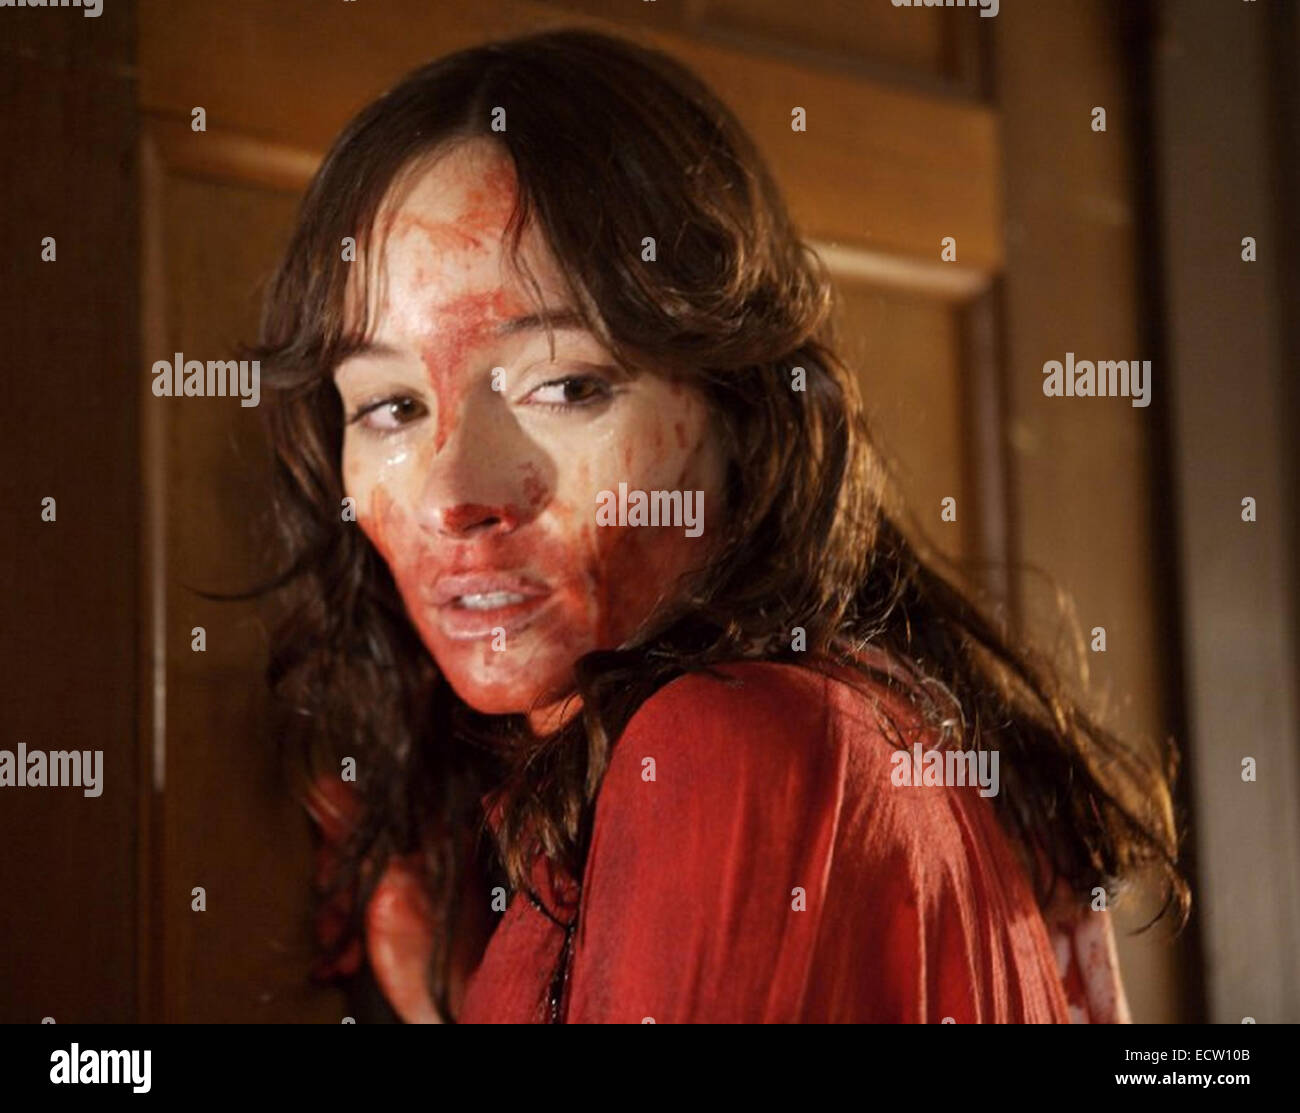 THE HOUSE OF THE DEVIL 2009 MPI Media Group film with Jocelin Donahue - Stock Image